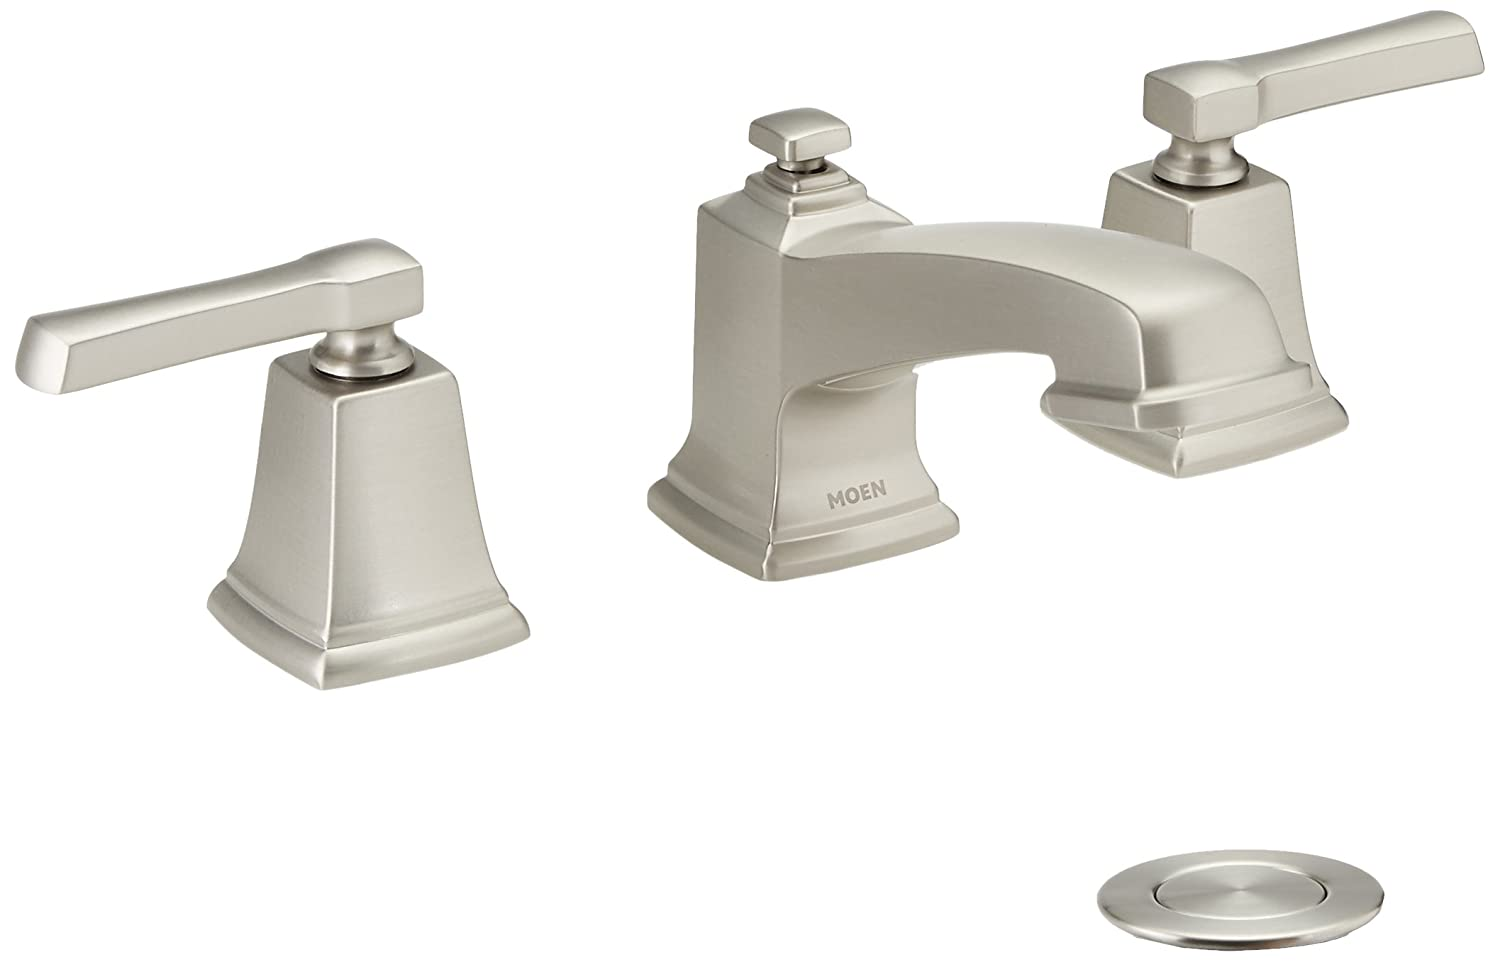 Miraculous Moen Ws84820Srn Boardwalk Two Handle Low Arc Bathroom Faucet Spot Resist Brushed Nickel Interior Design Ideas Inesswwsoteloinfo